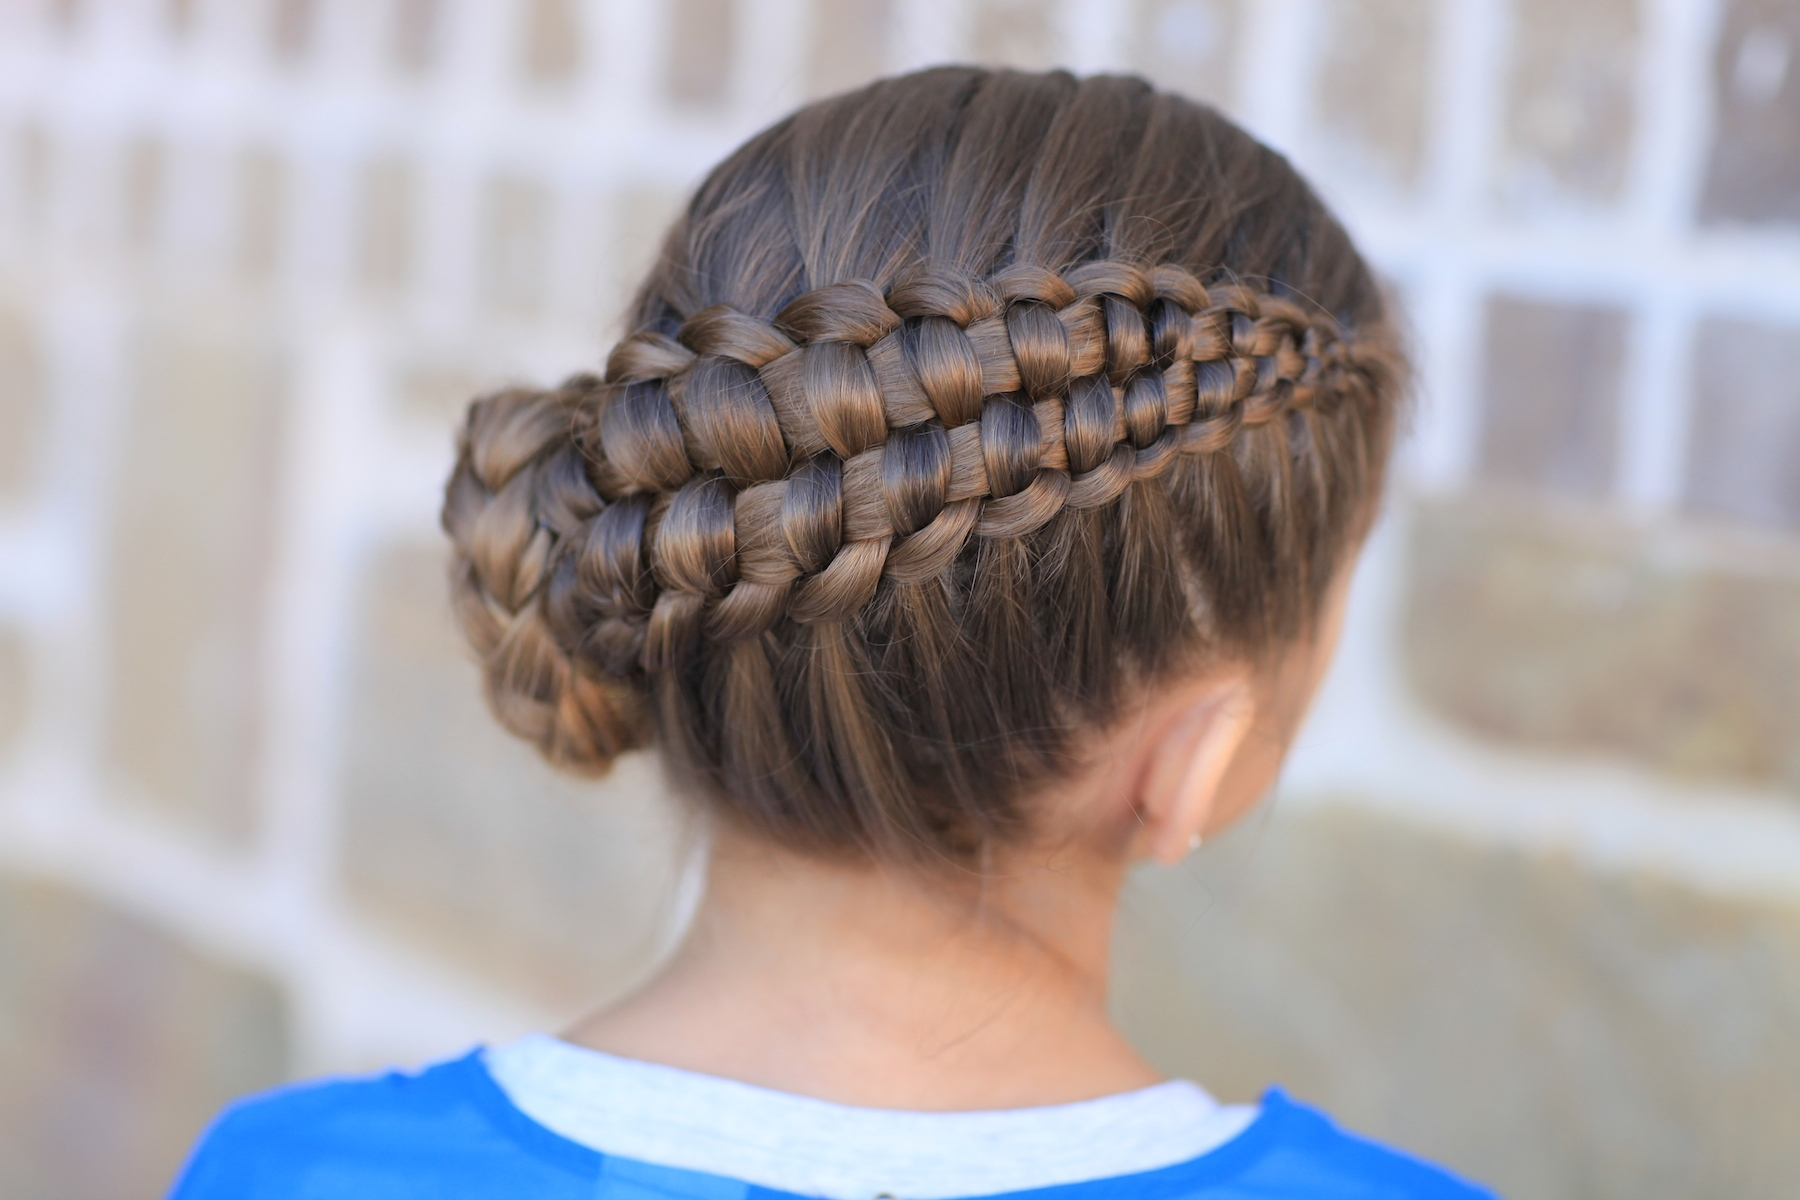 Cute Hair Styles With Braids: How To Create A Zipper Braid